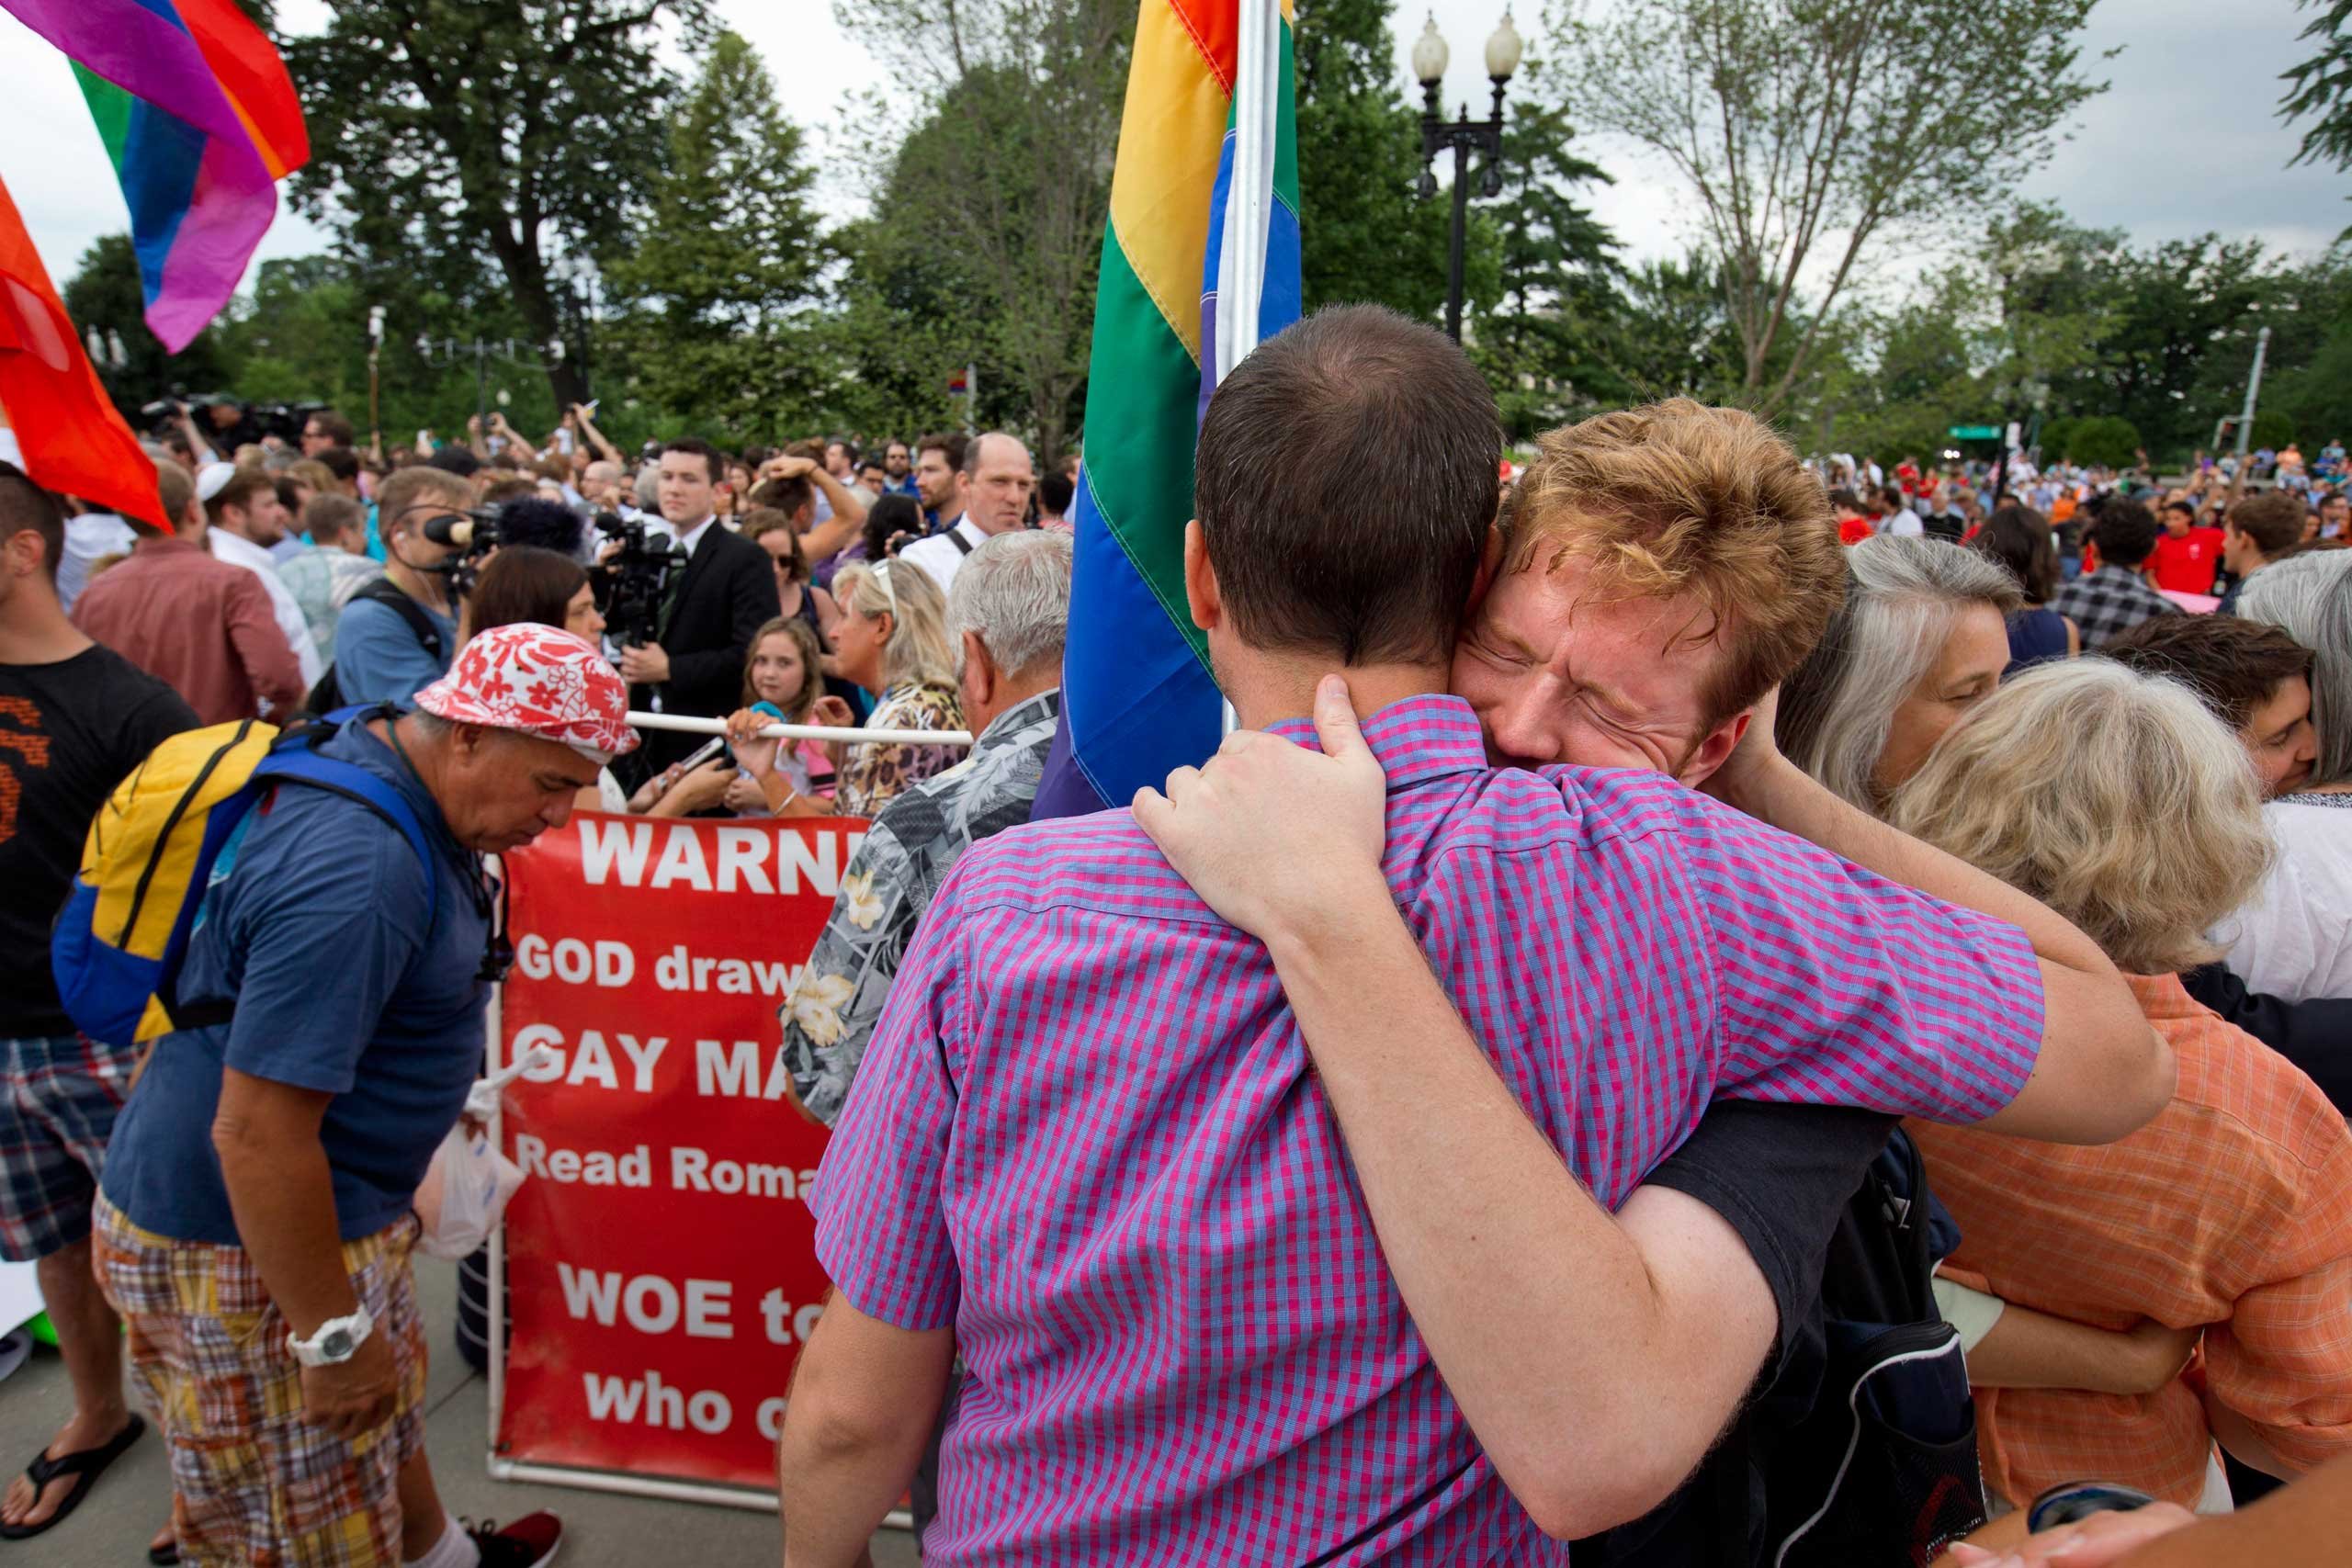 John Becker, right, hugs his friend and fellow LGBT advocate Paul Guequierre, outside the Supreme Court in Washington on June 26, 2015.